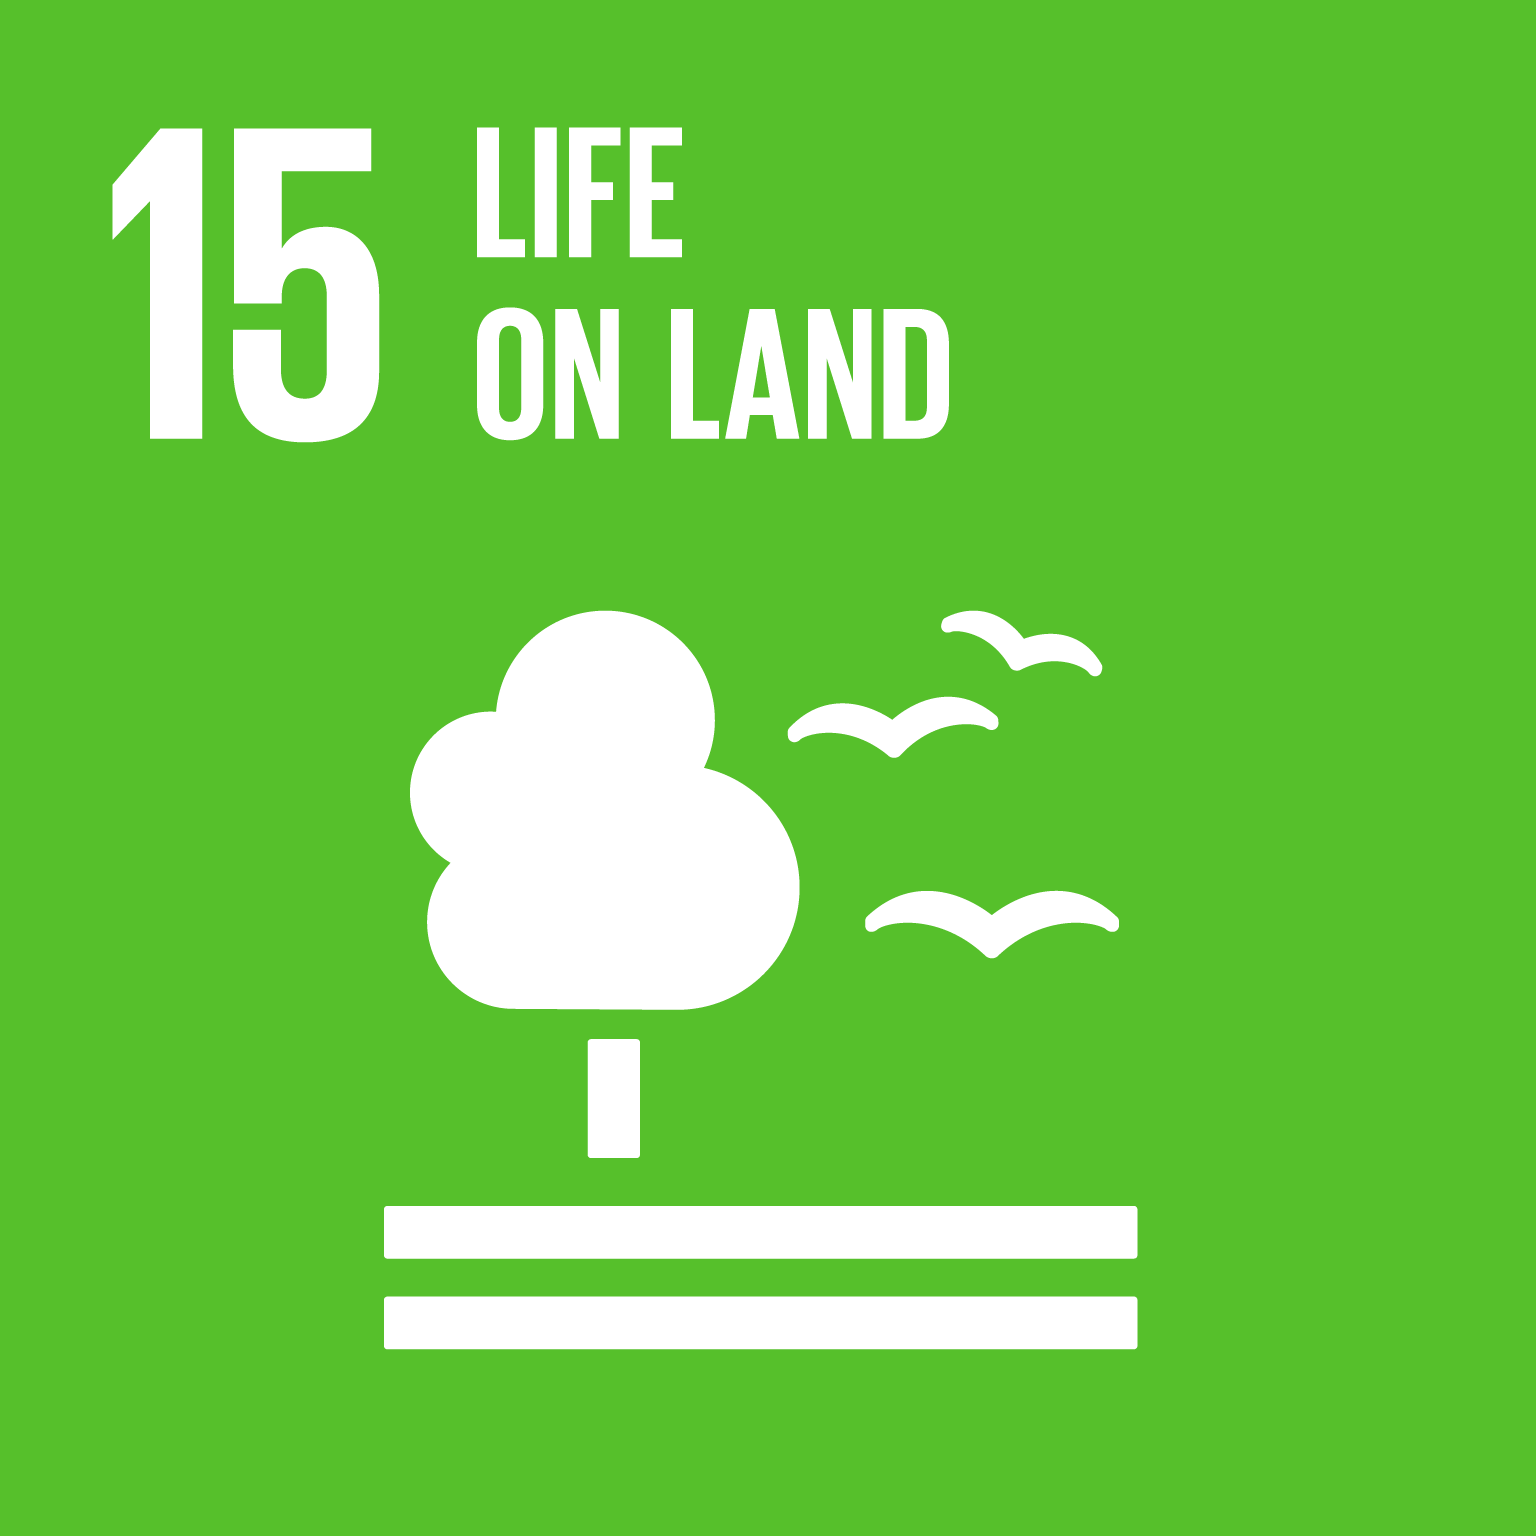 【SDGs logo】LIFE ON LAND